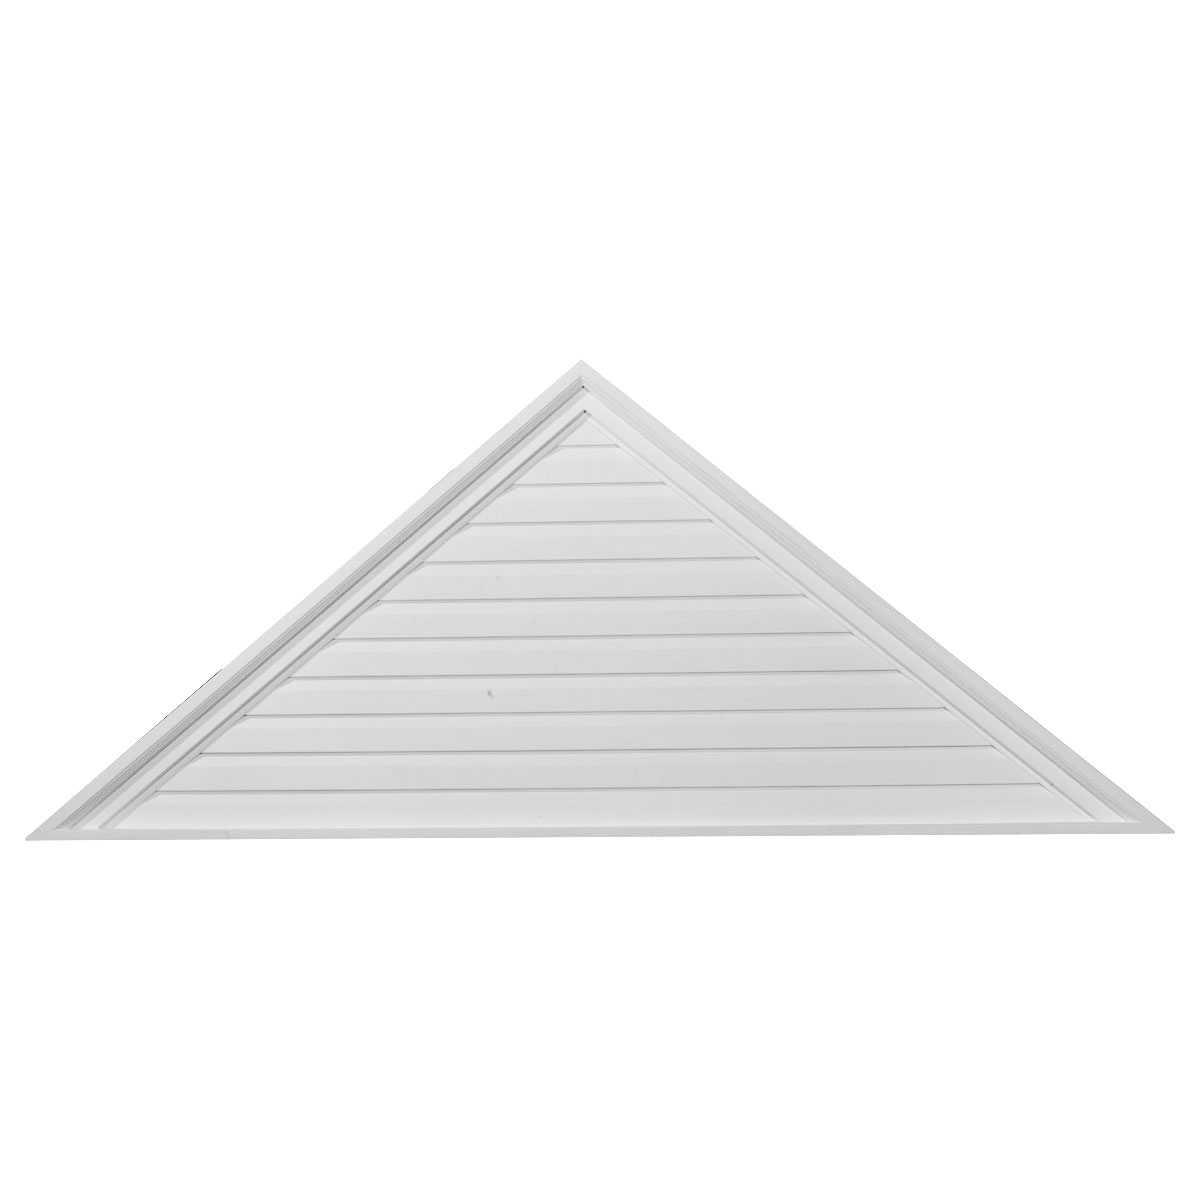 65'W x 27'H x 2 1/4'P, Pitch 10/12 Triangle Gable Vent, Functional